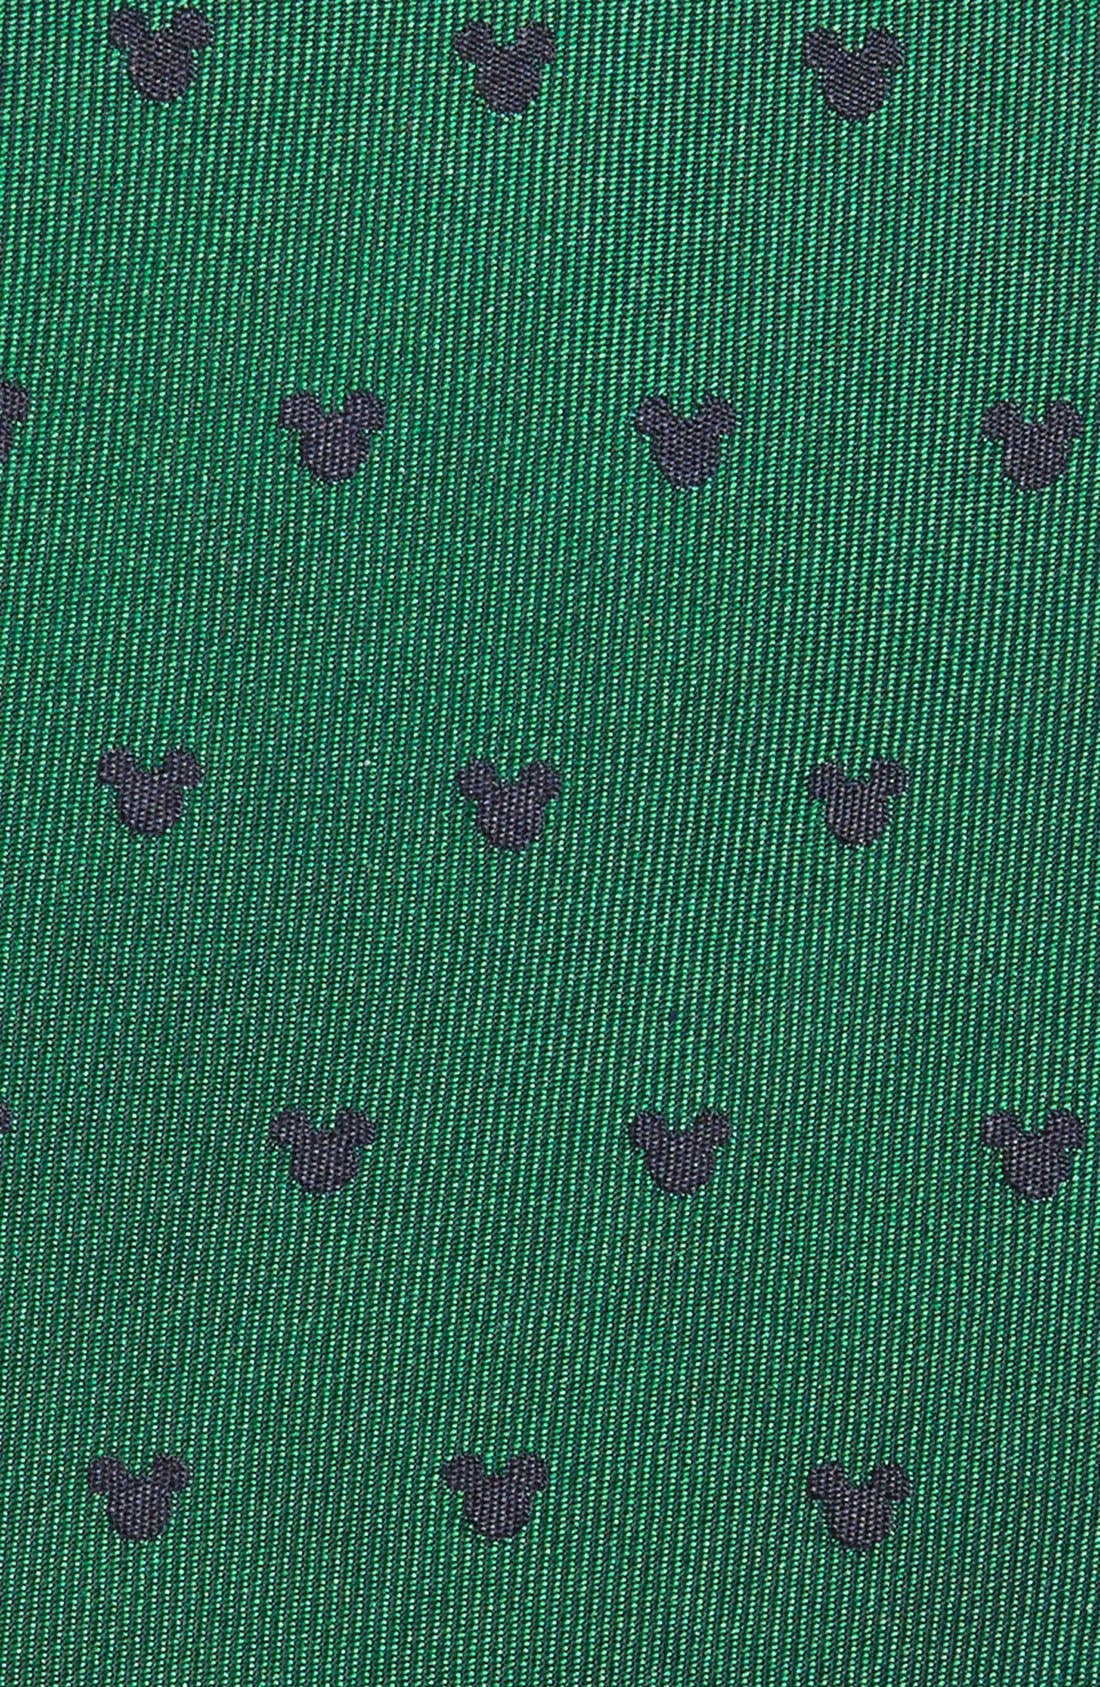 'Disney - Mickey Mouse' Silk Tie,                             Alternate thumbnail 2, color,                             300